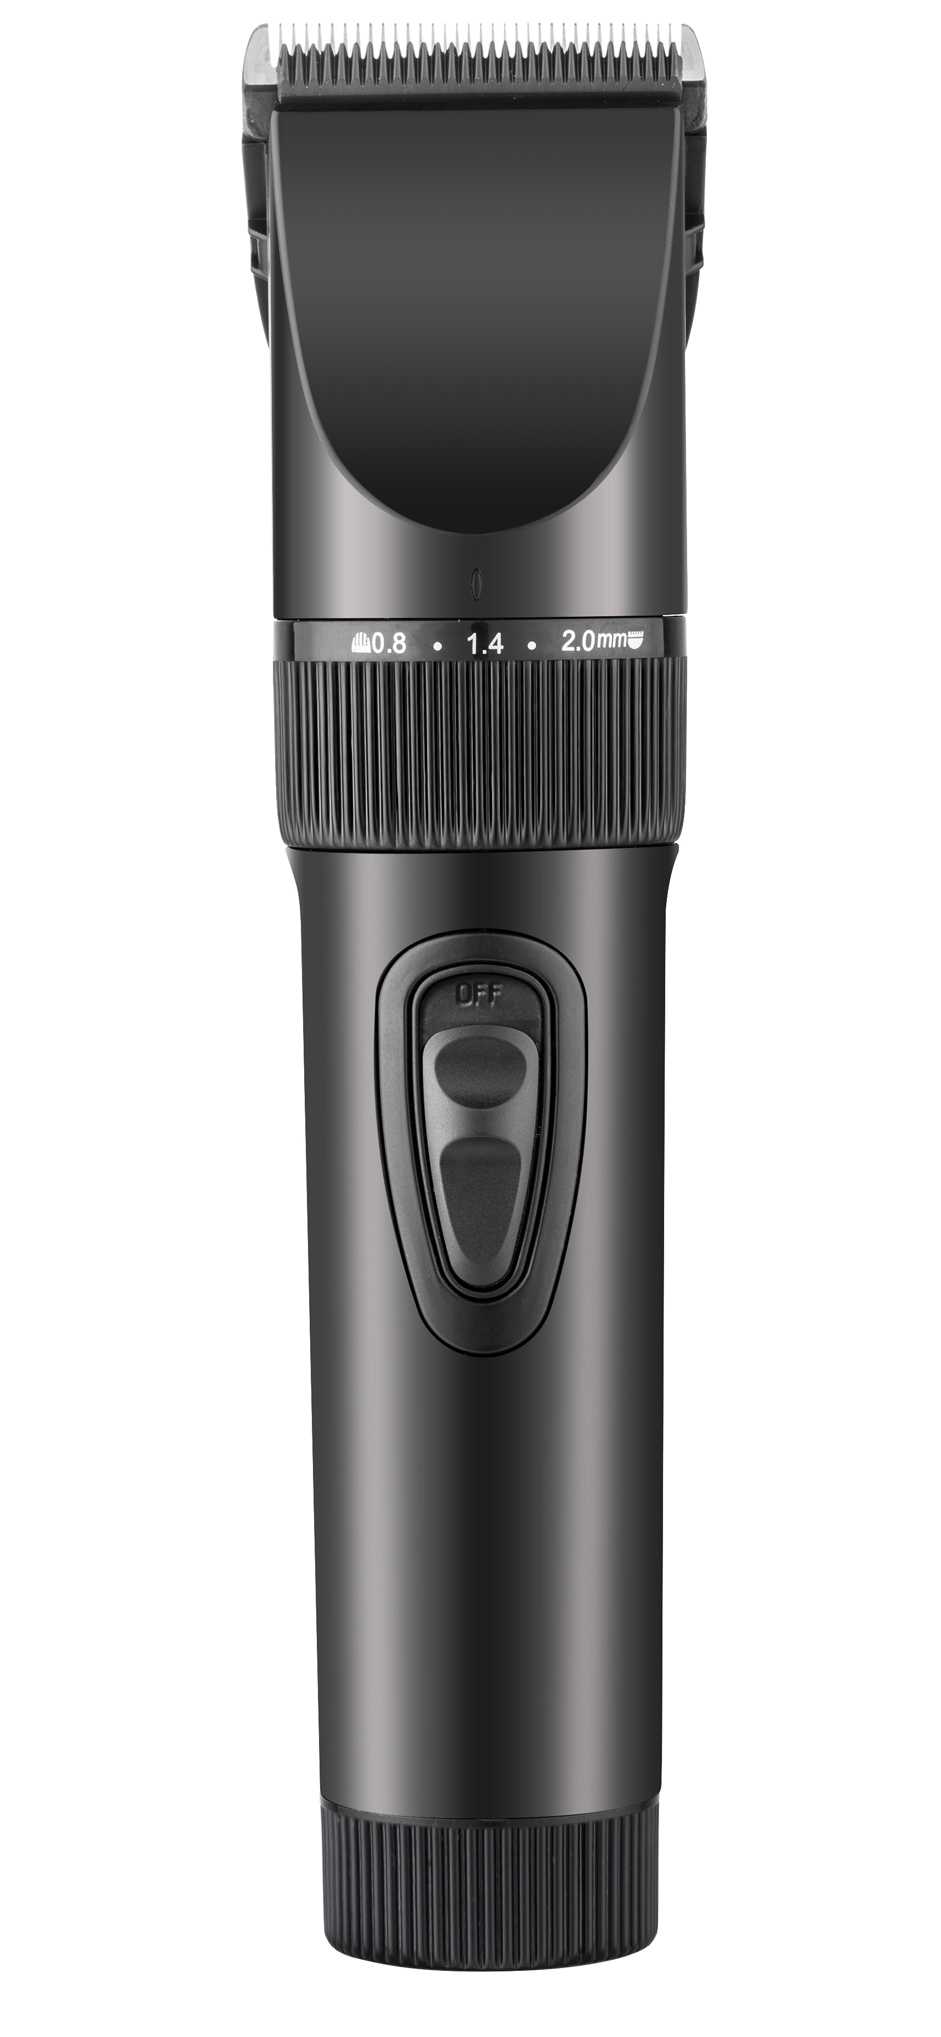 Iclipper GB-X7 professional 3.7V motor cord and cordless top quality  hair clipper